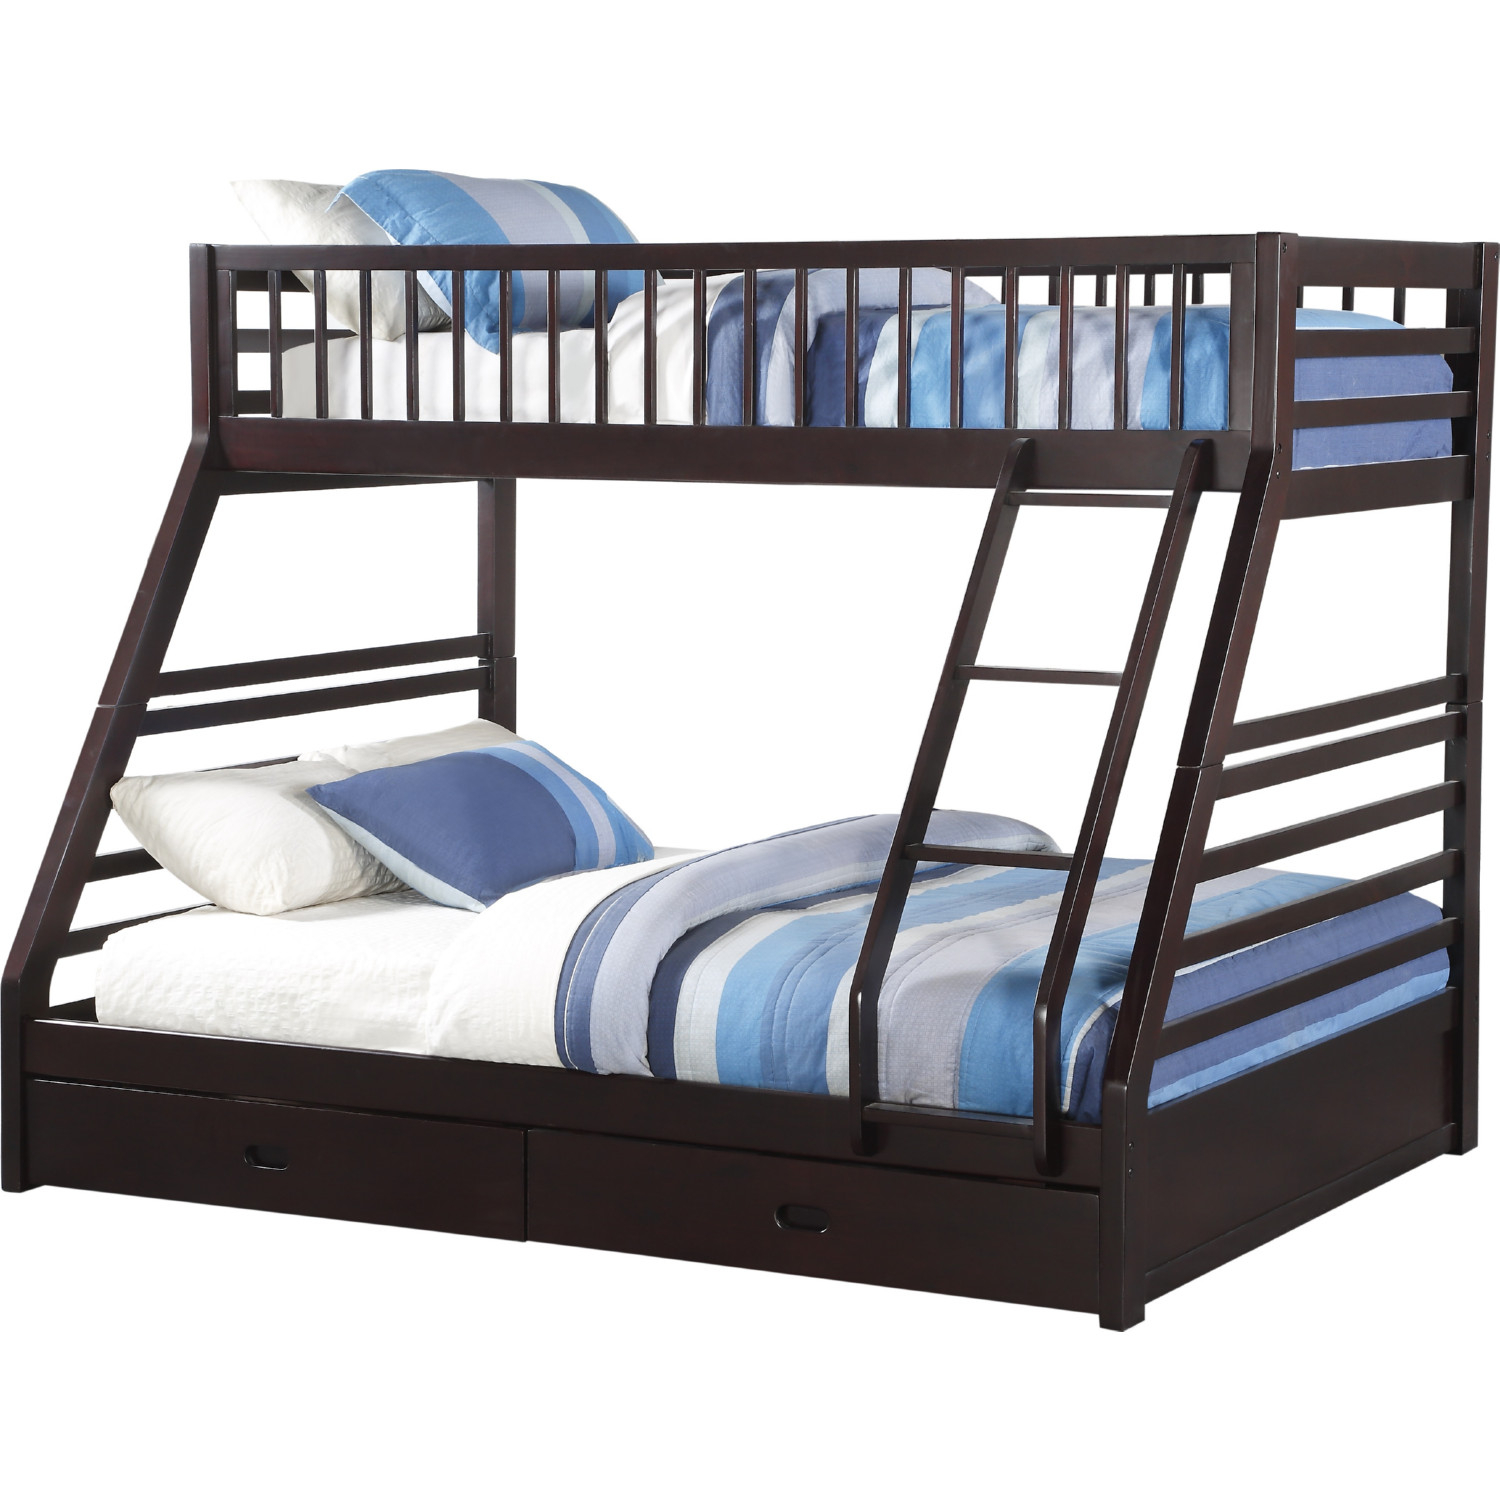 Acme 37425 Jason Xl Twin Over Queen Bunk Bed W Drawer In Espresso